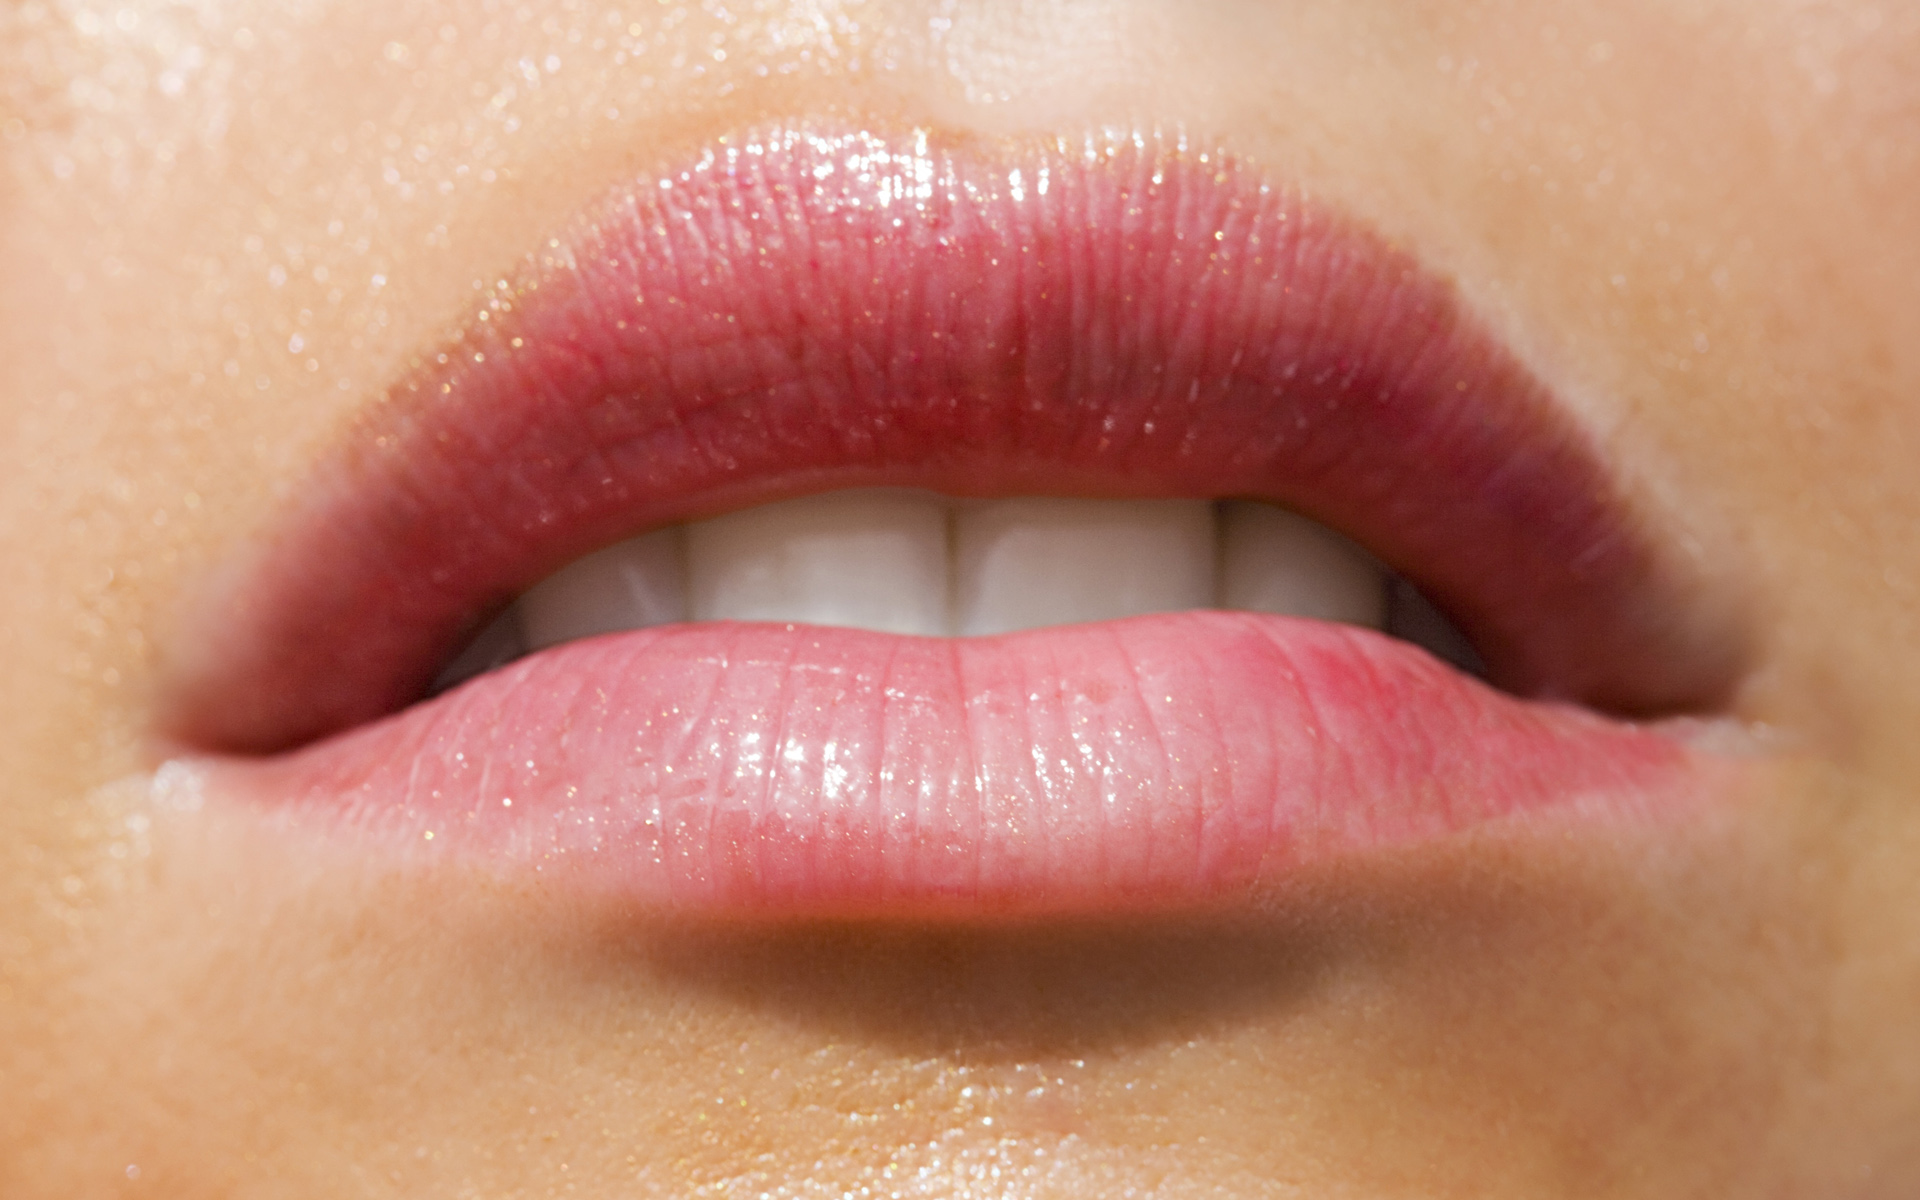 Cosmetics: Mouth and Lips